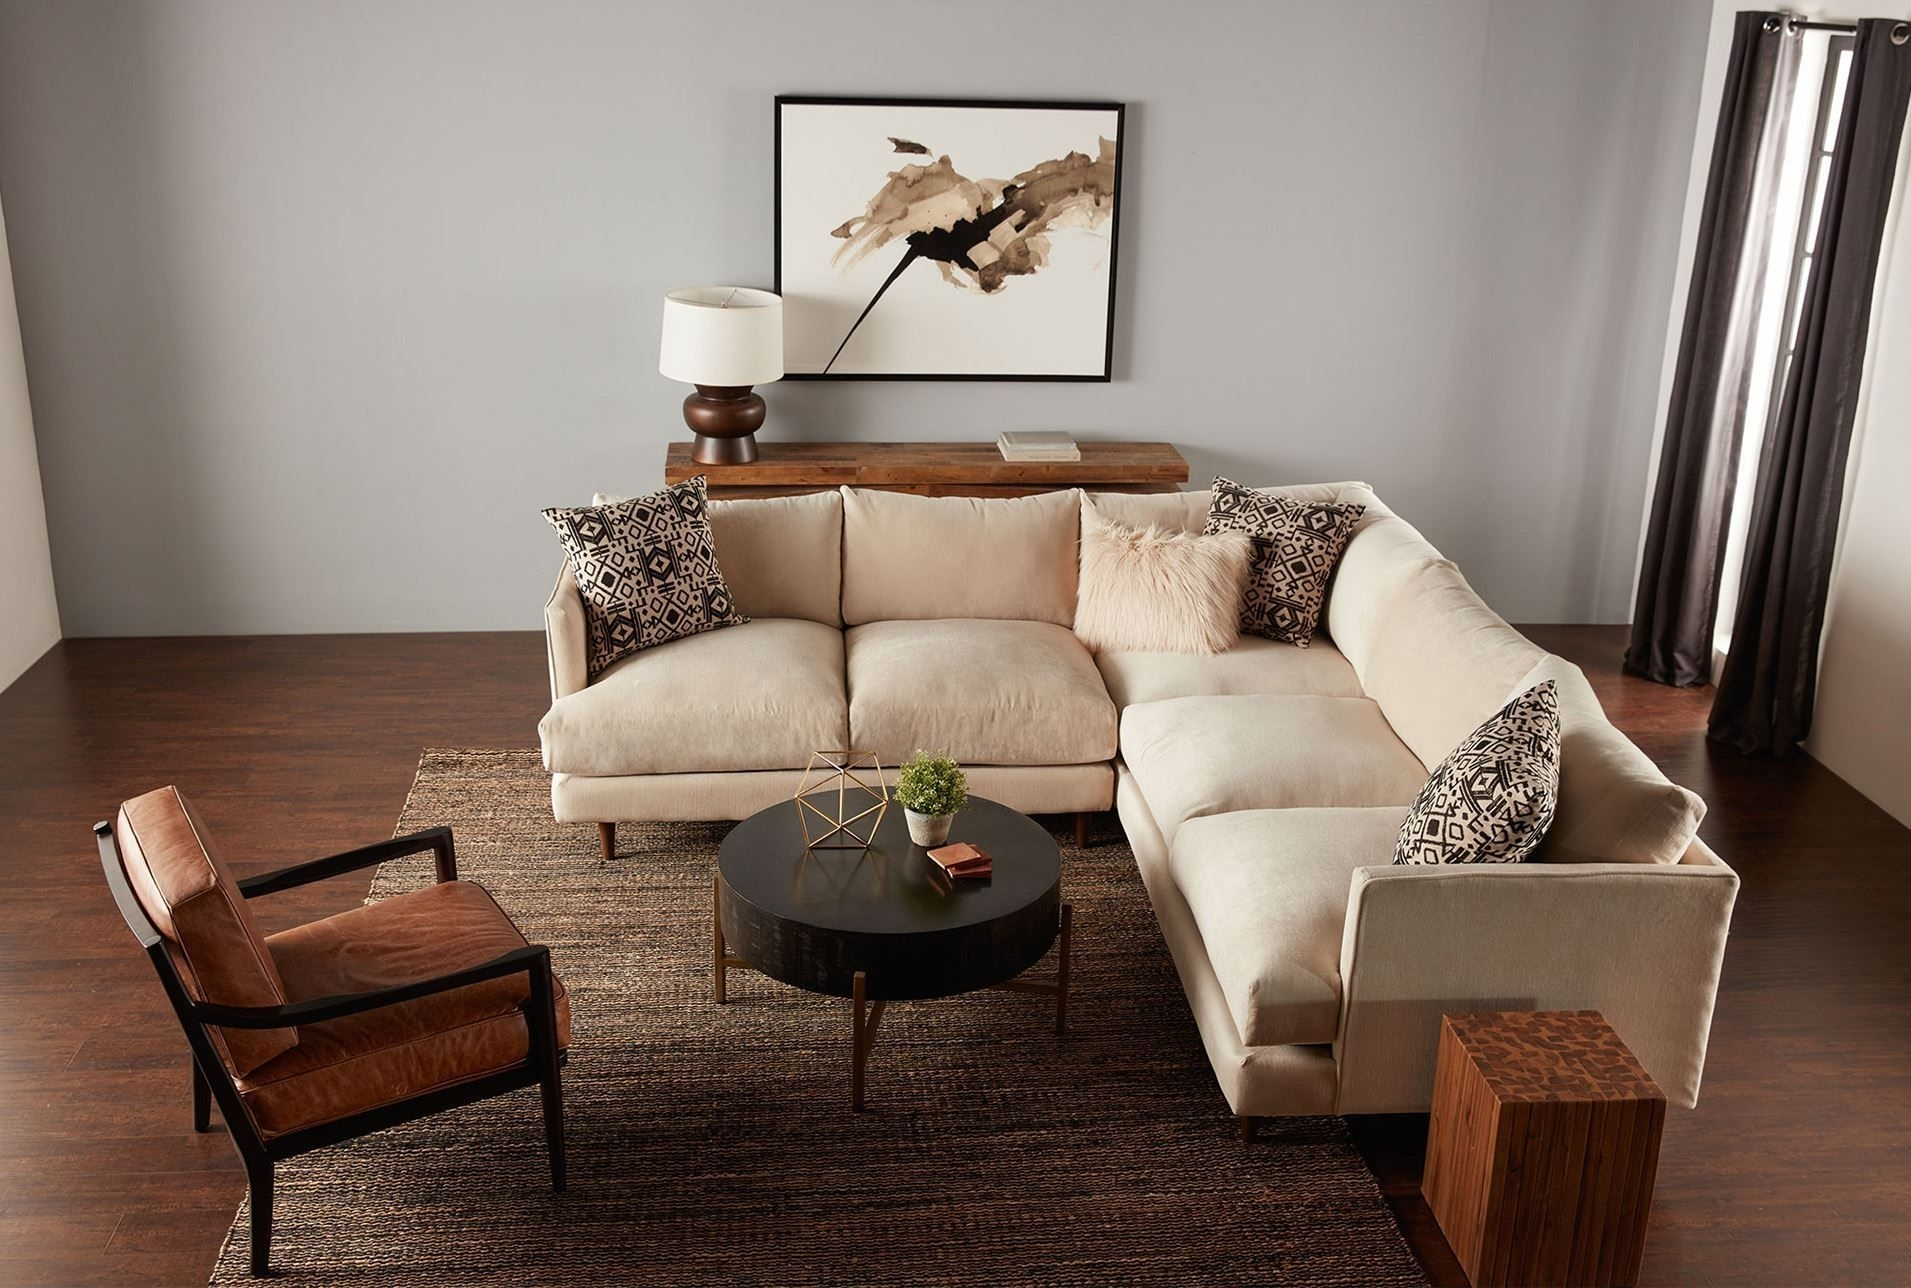 Adeline 3 Piece Sectional | Living Room Redesign | Pinterest with regard to Adeline 3 Piece Sectionals (Image 3 of 30)